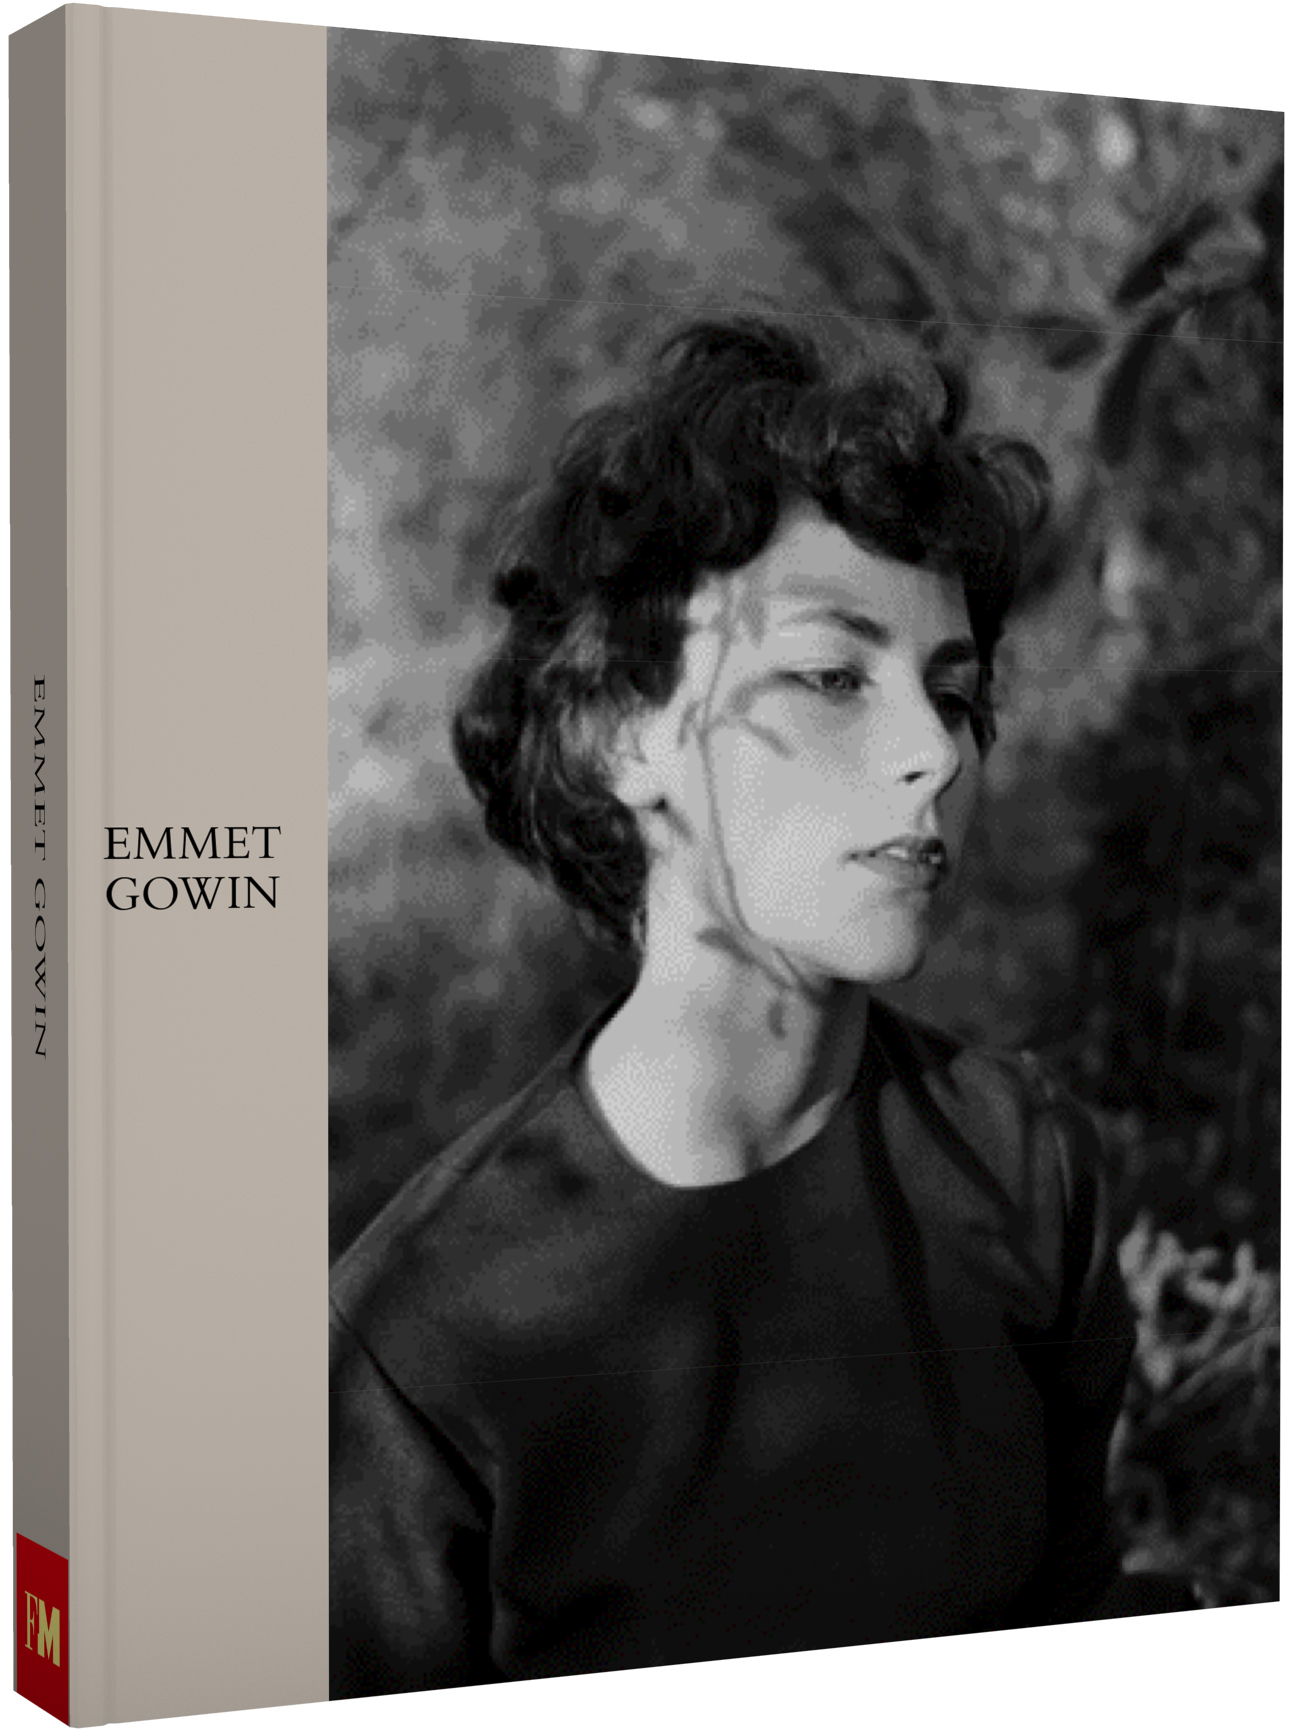 photo-eye New Arrivals+ Emmet Gowin, Roger Eberhard, Alec Soth & in our Auctions: Dirk Alvermann